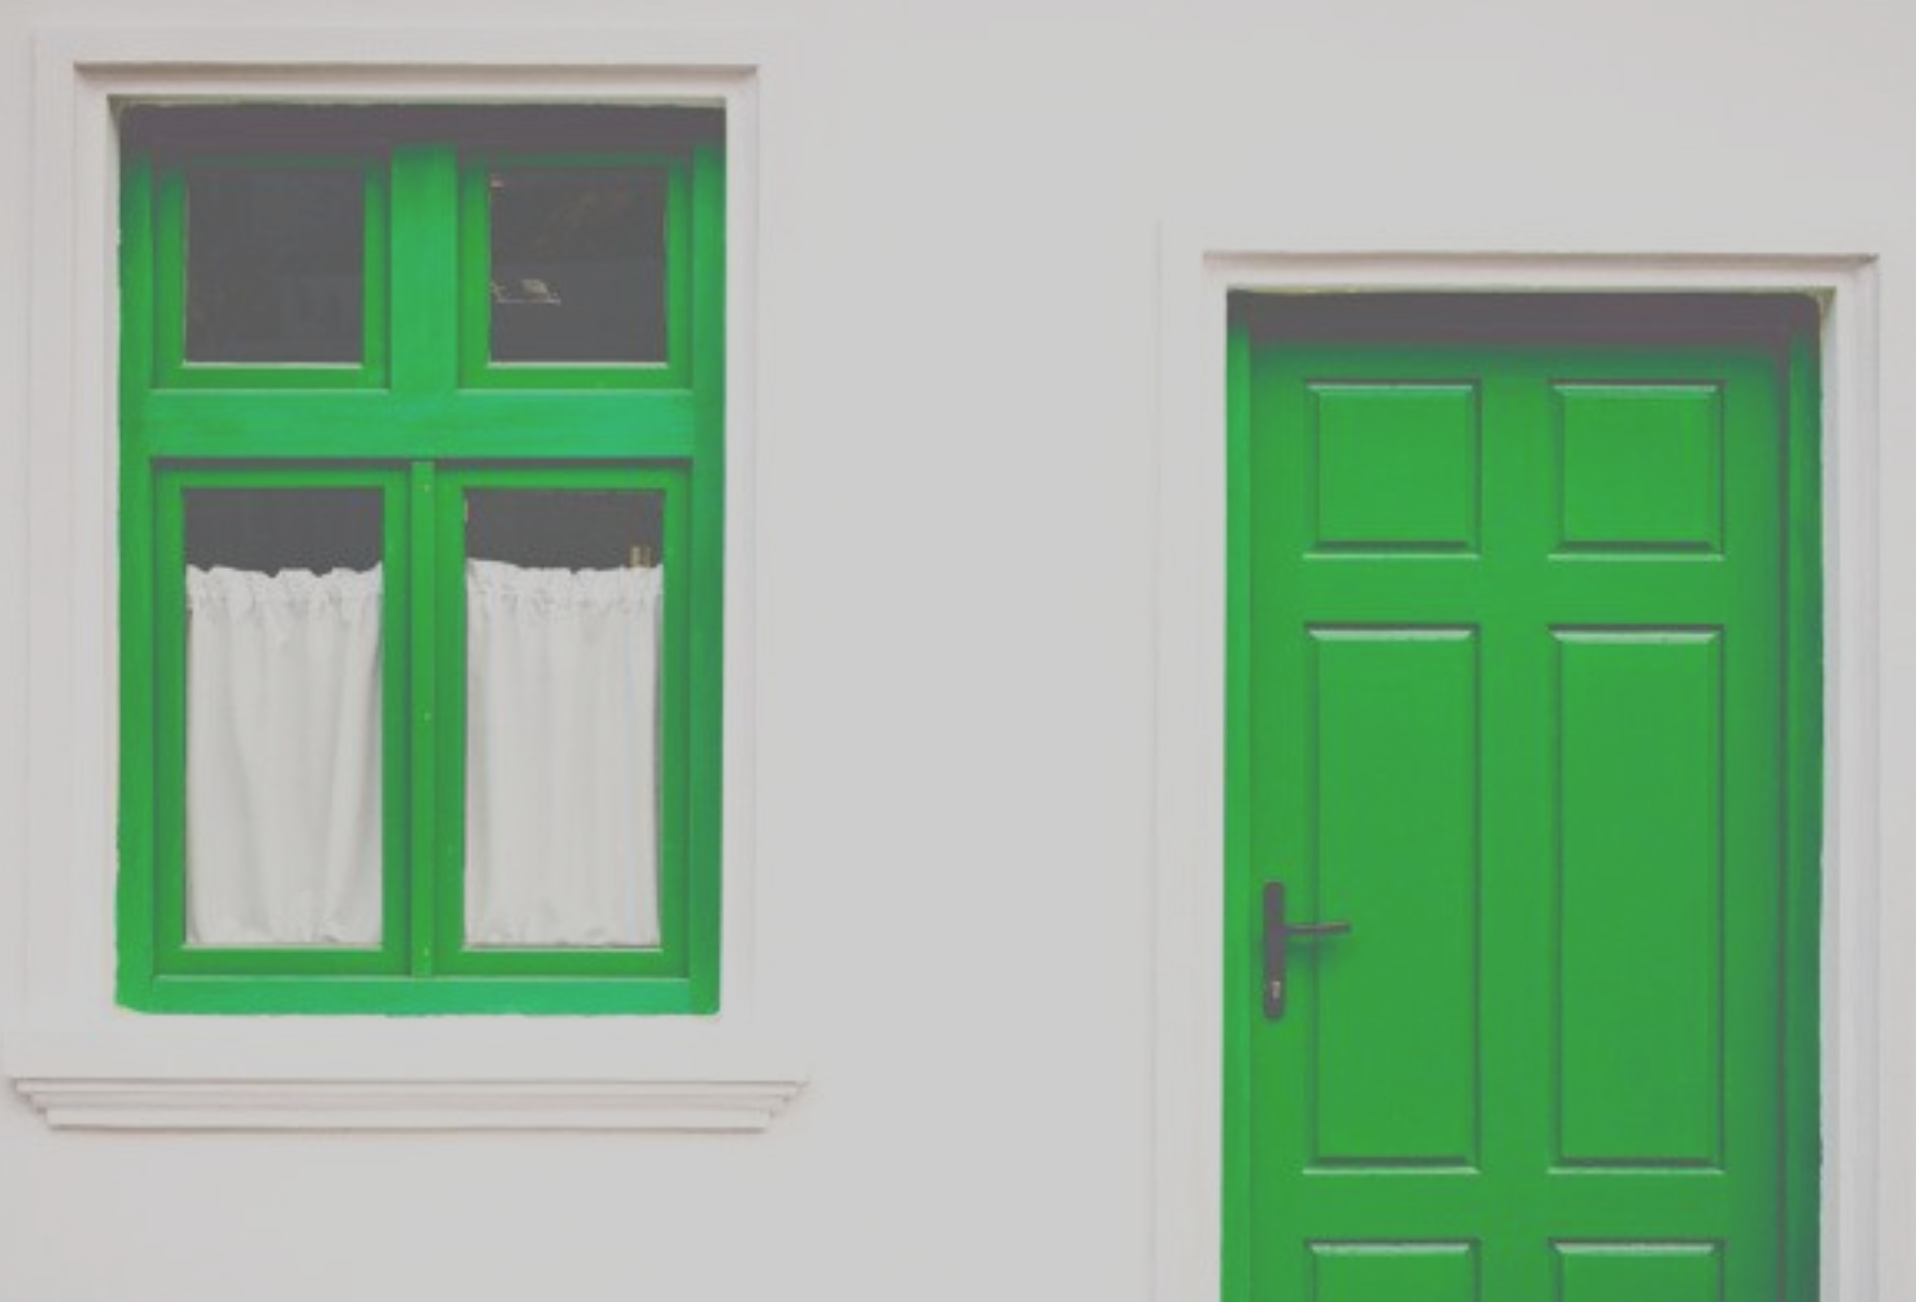 A photo of a house with green door and window